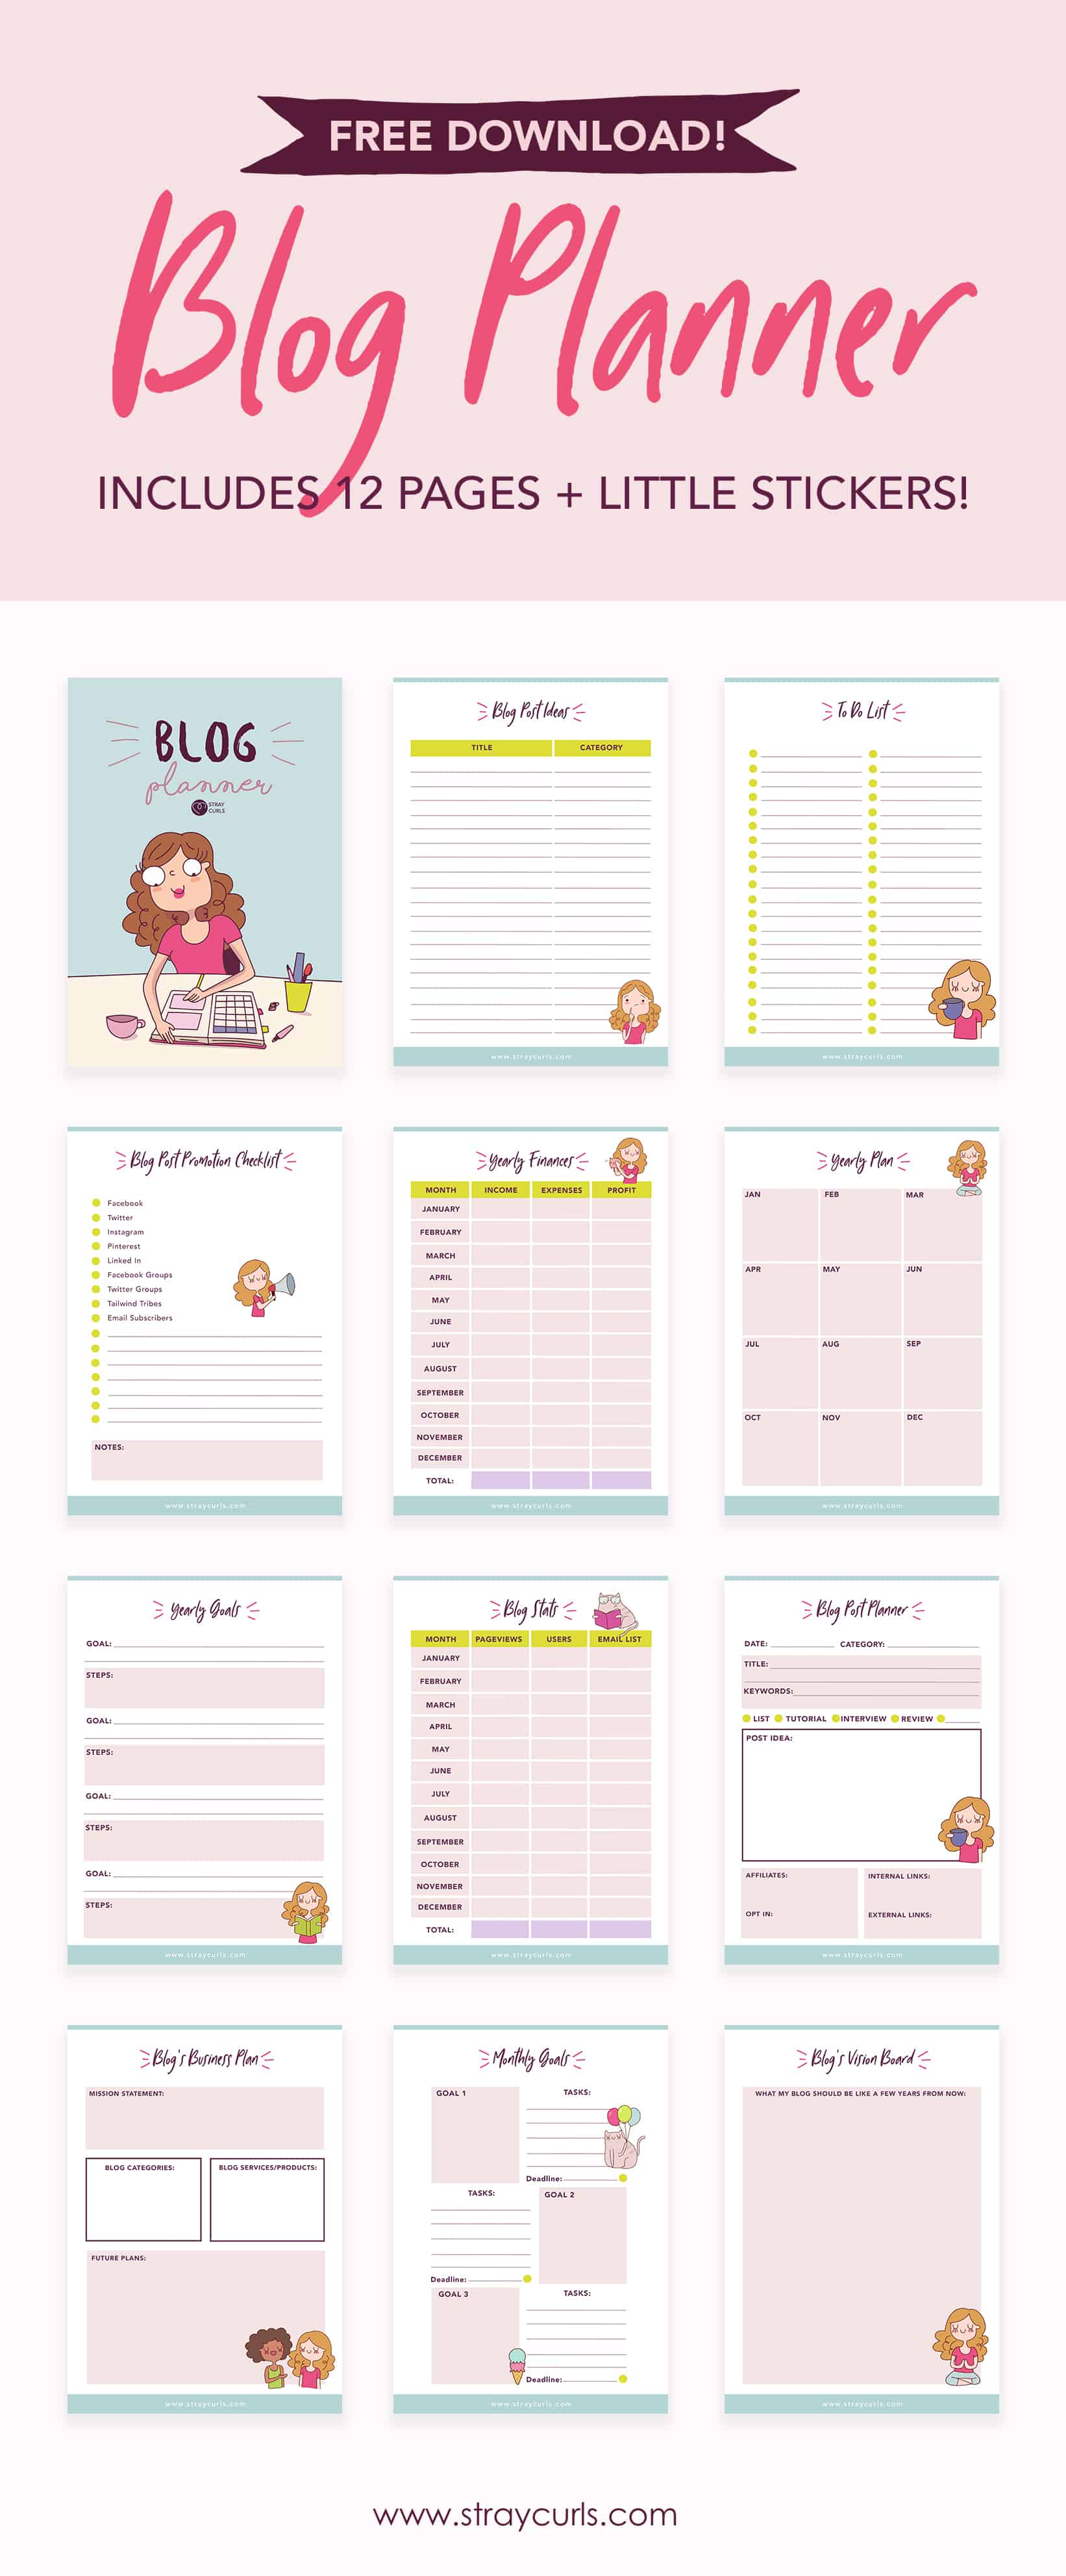 photograph about Blog Planner Printable known as Cost-free Down load: 12 Web page 2019 Web site Planner - Stray Curls